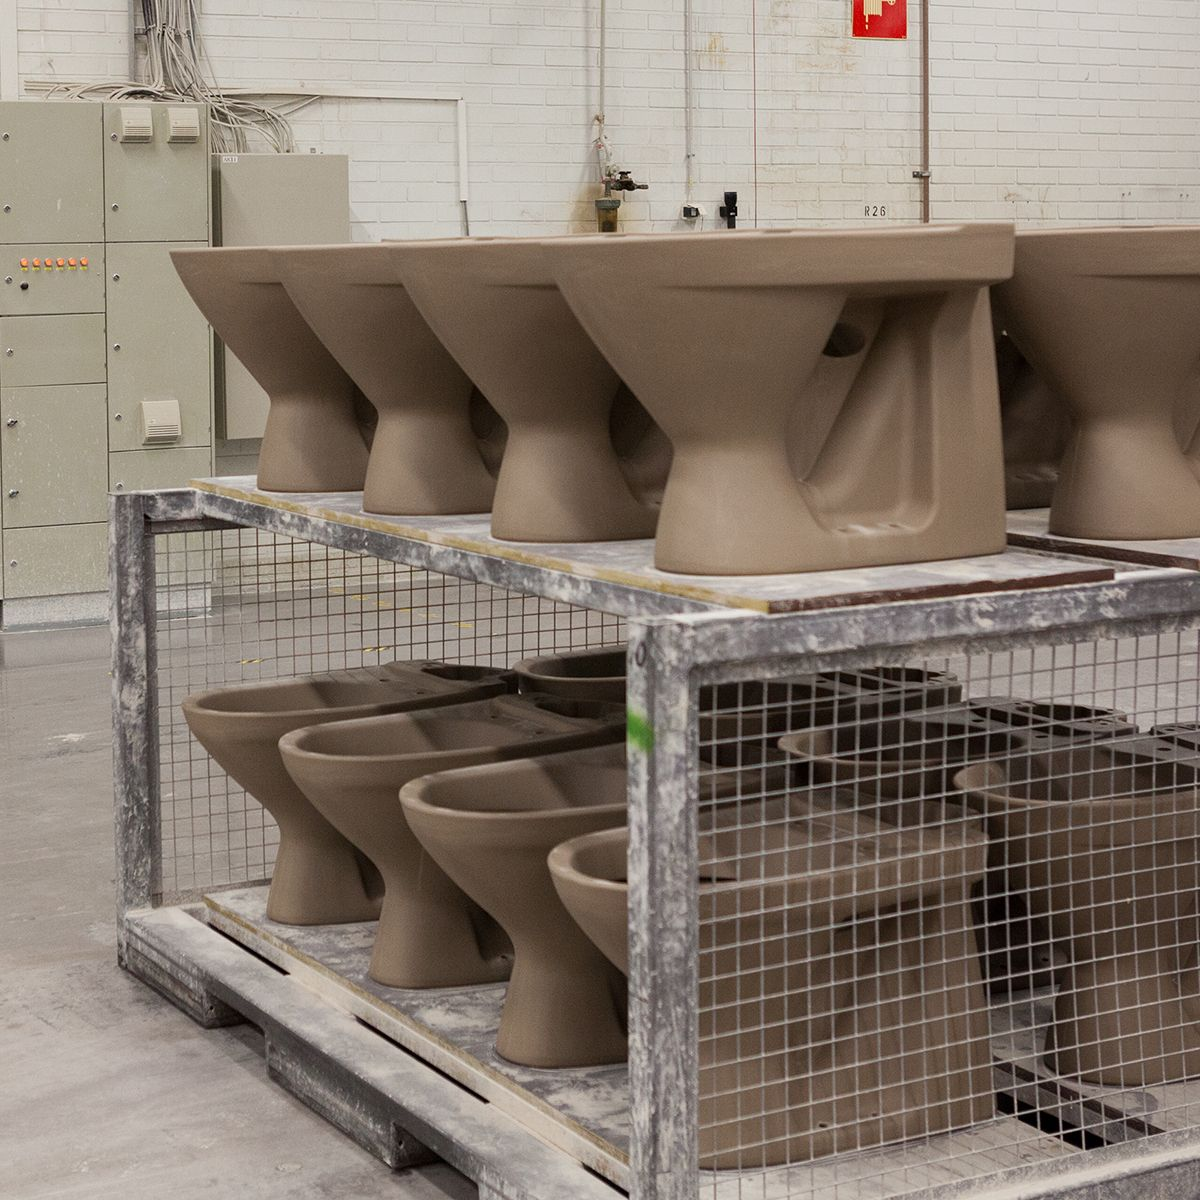 WC-istuimia ennen lasitusta. #bathroom #bathroomdesign #interiordesign #homespa #scandinaviandesign #bathroomideas #bathroomsink #interiordecoration #toilet #factory #sink #finnishdesign #bathroominspiration #ceramics #ceramicsoven #bathroomidea #tap #washbasin #fauset #behindthescenes #sanitary #porcelain #interiorideas #glazing #toiletseat